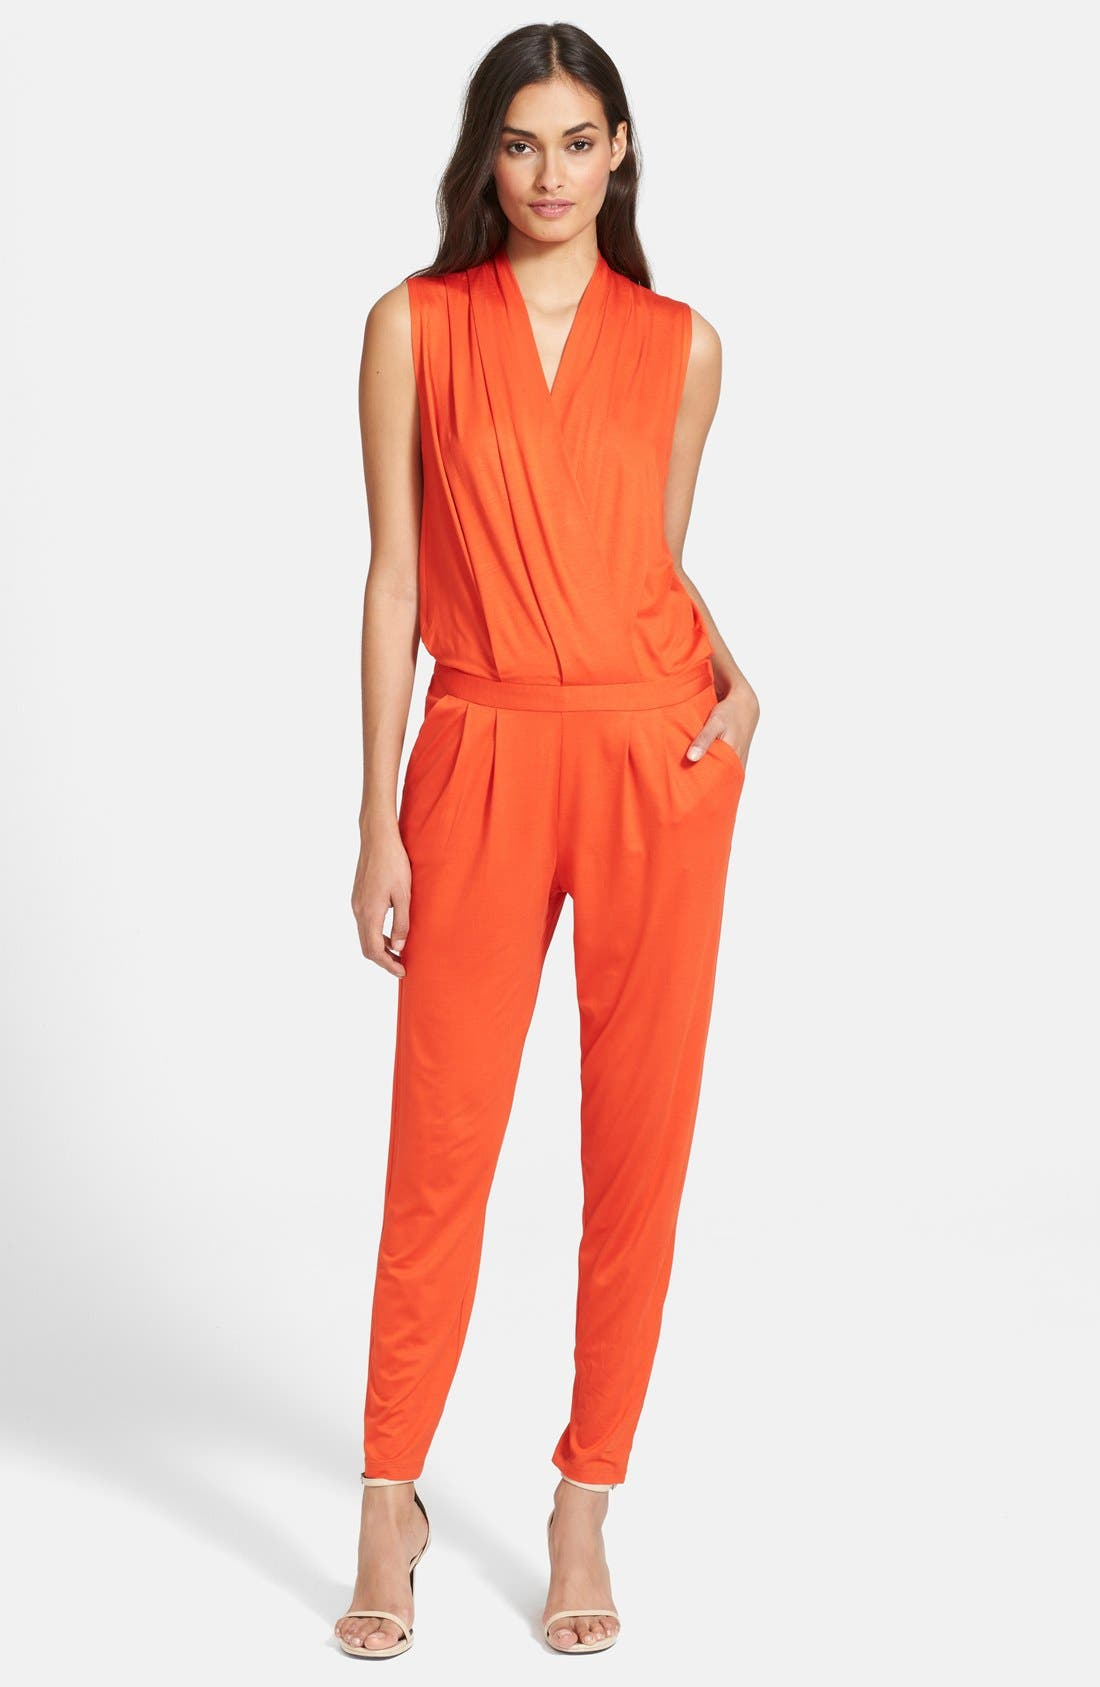 Alternate Image 1 Selected - Trina Turk 'Pauline' Surplice Jumpsuit